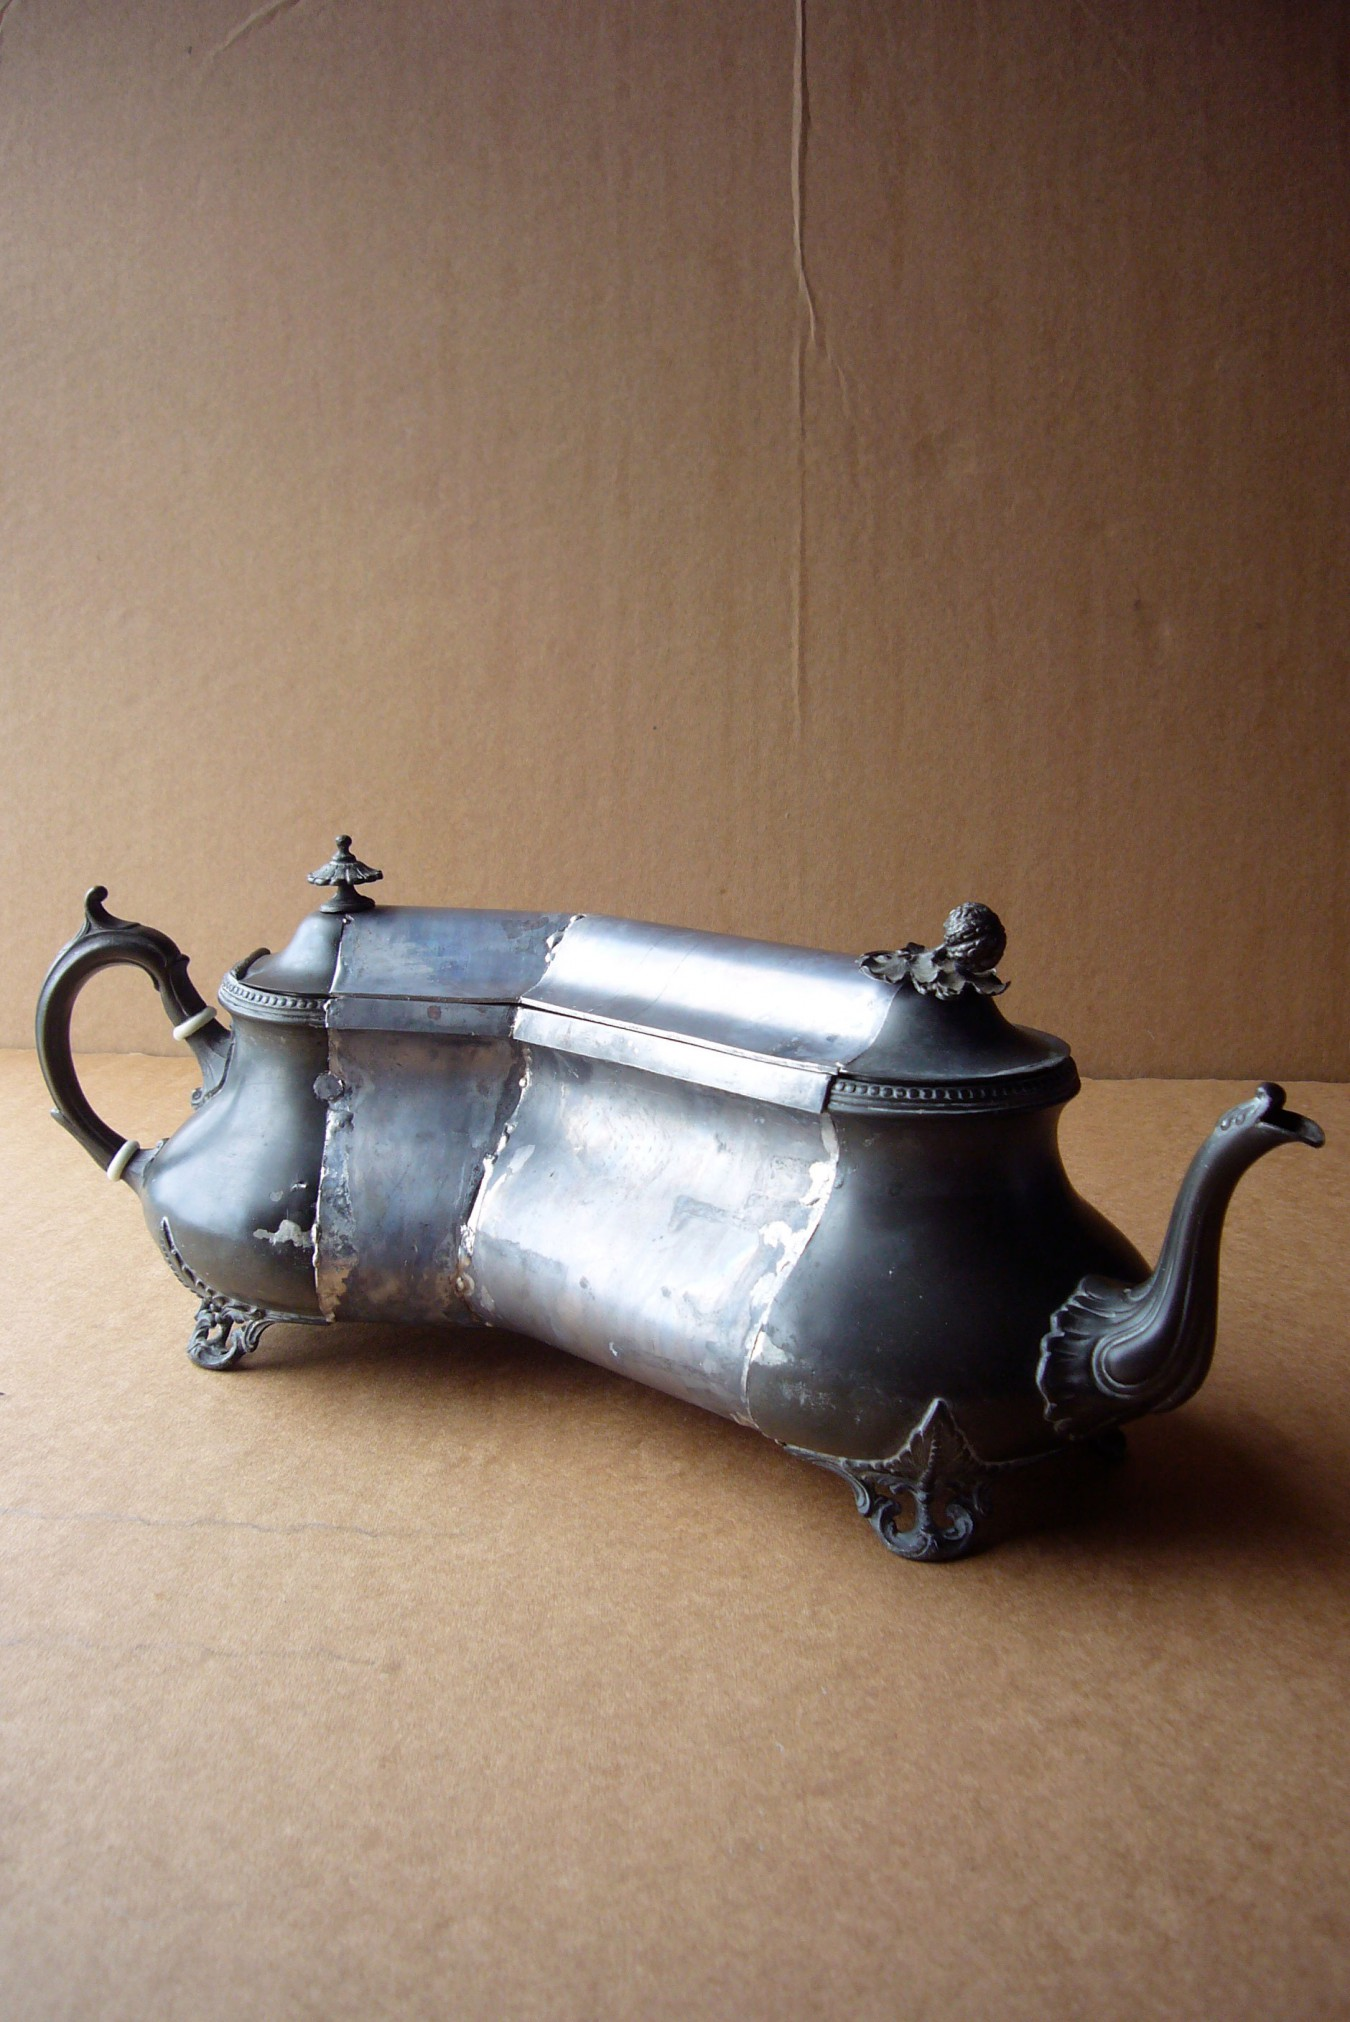 Image of an old tarnished metal teapot, cut altered placed in a new configuration with the addition of lead which robs the teapot of it's original function